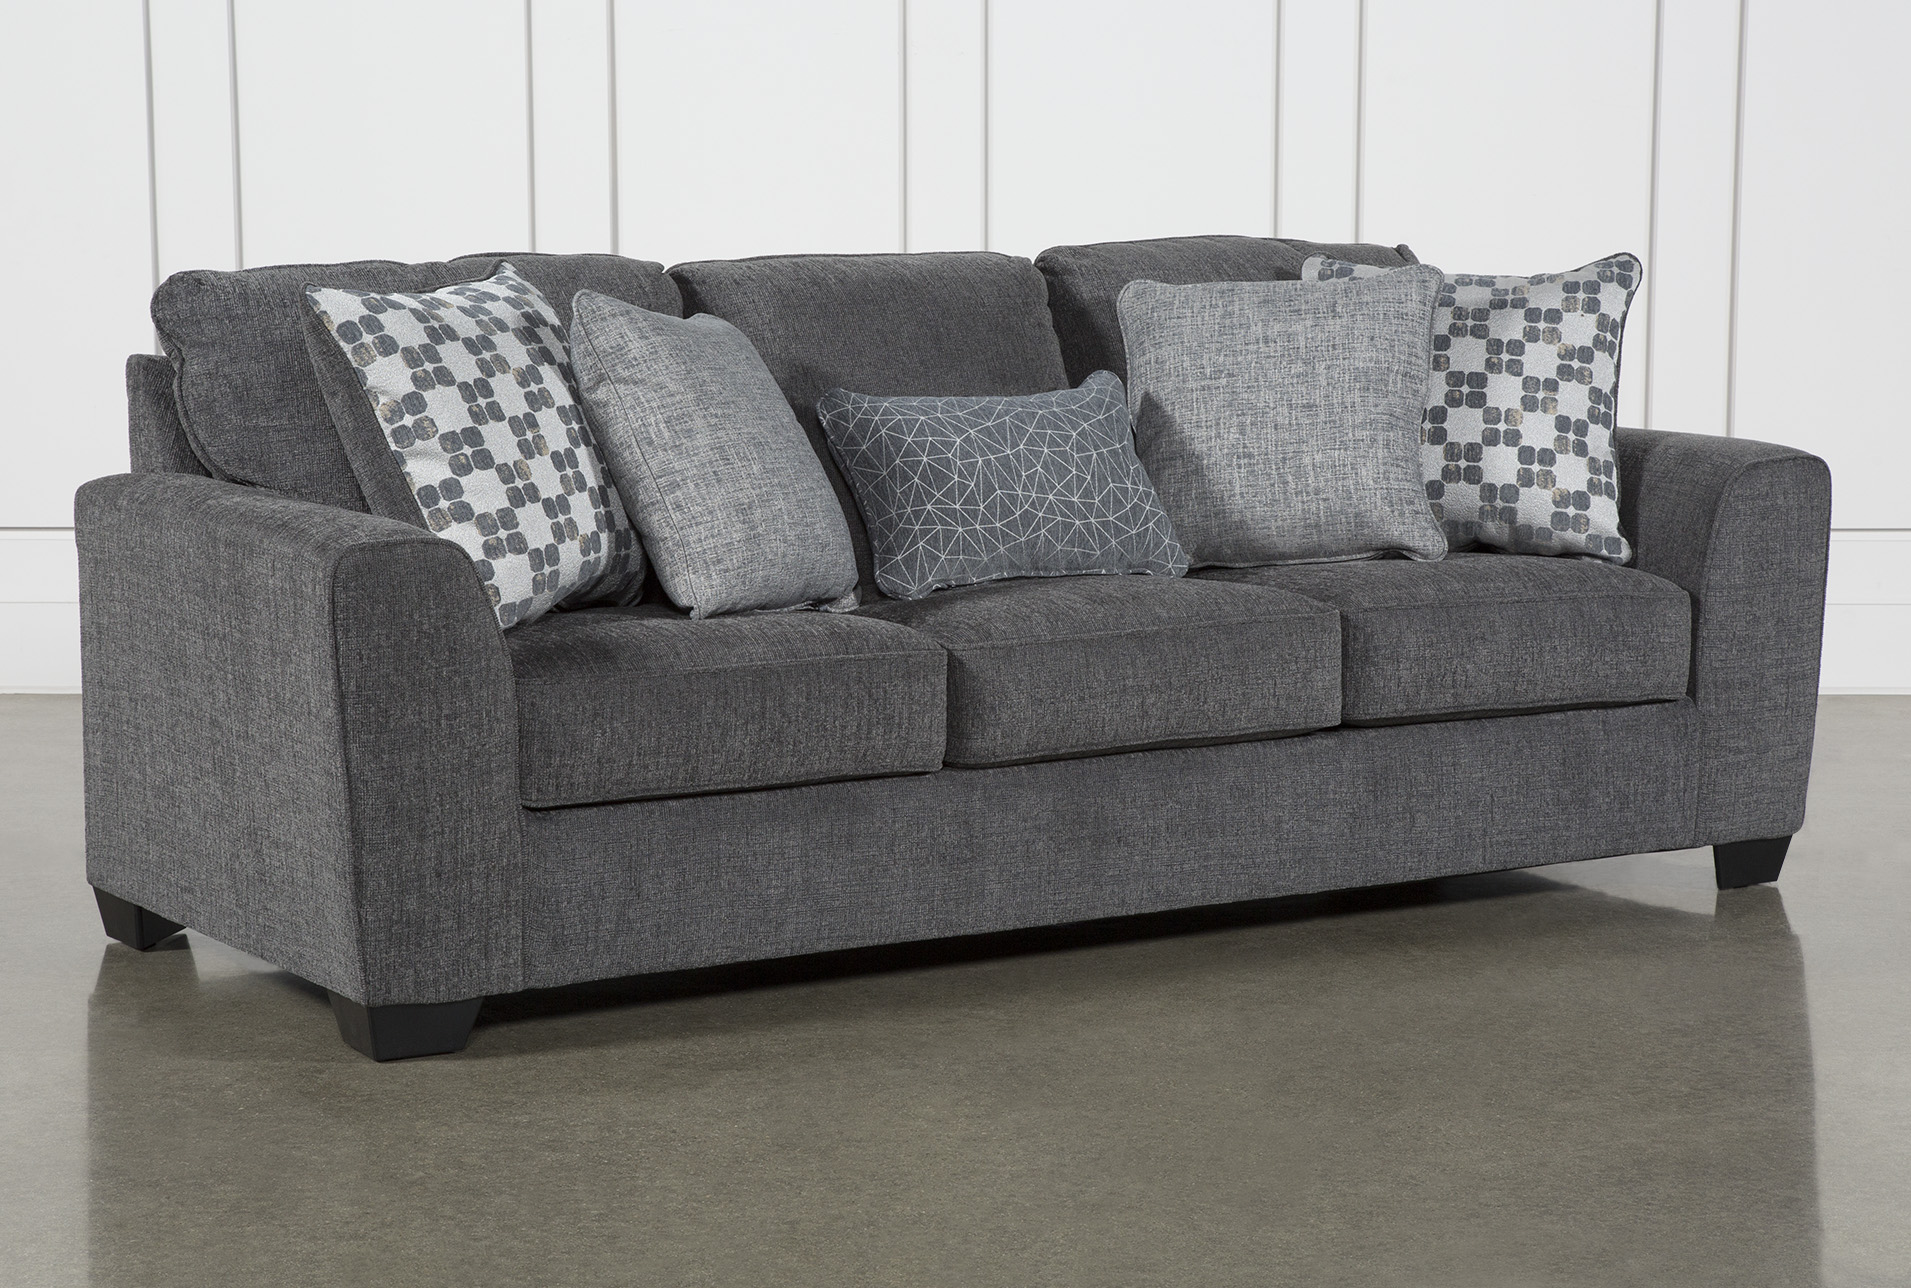 Squareqi Steckdose Mit Usb Anschluss Und Induktion Ladegerät Sofa Cushions Attached Vs Loose